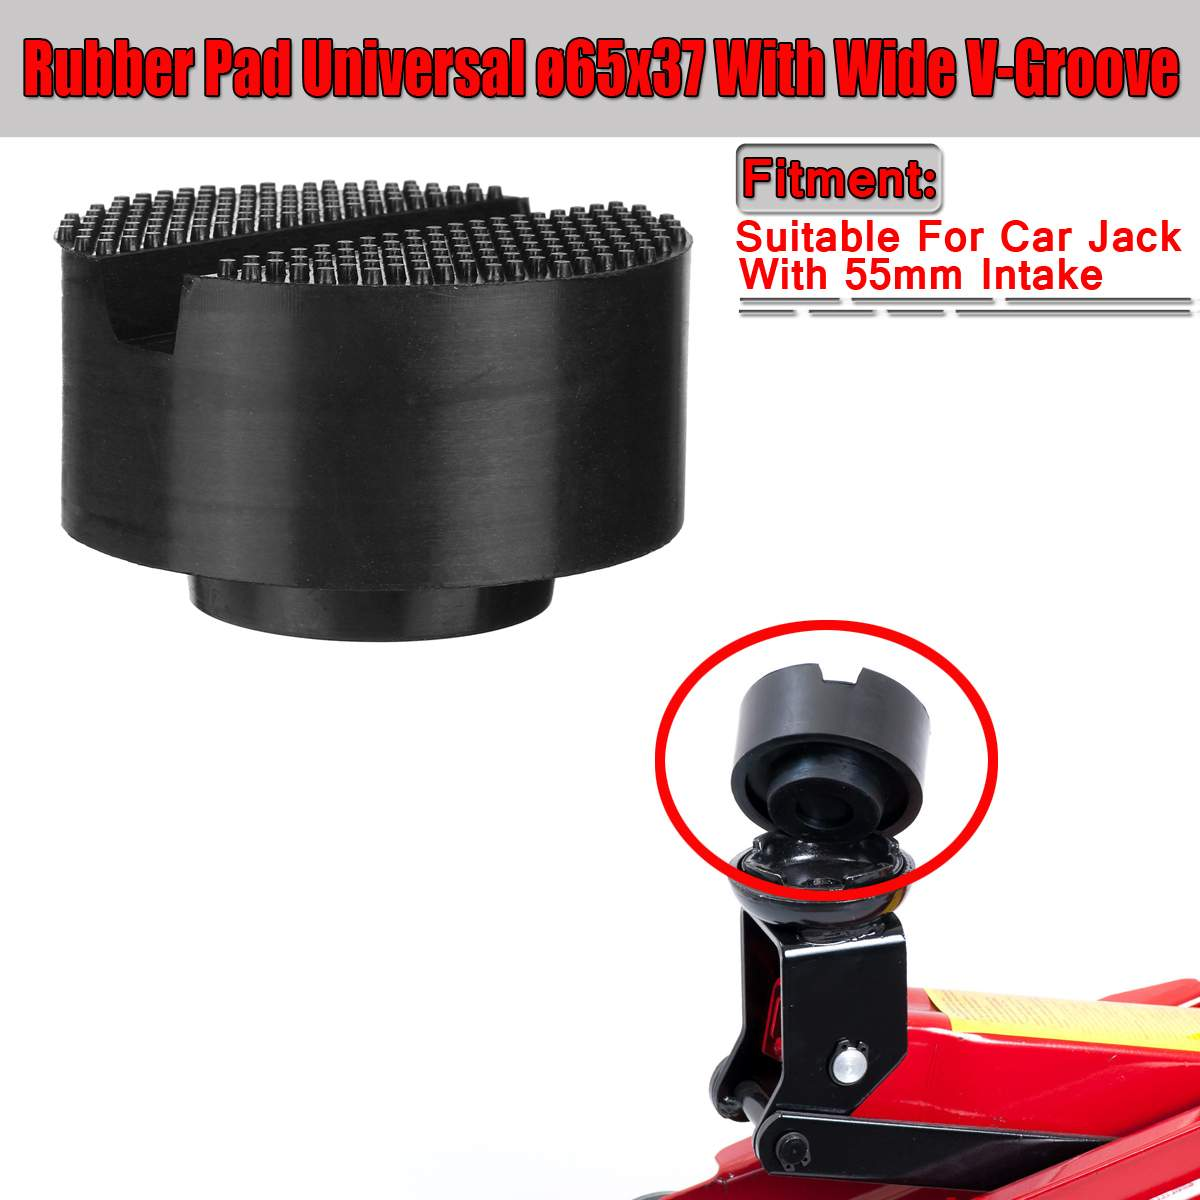 Universal 65x37mm Motor Rubber Pad For Lifting Jack Lift Disk Frame Protector Guard Adapter Car Repair Tool With Wide V-Groove